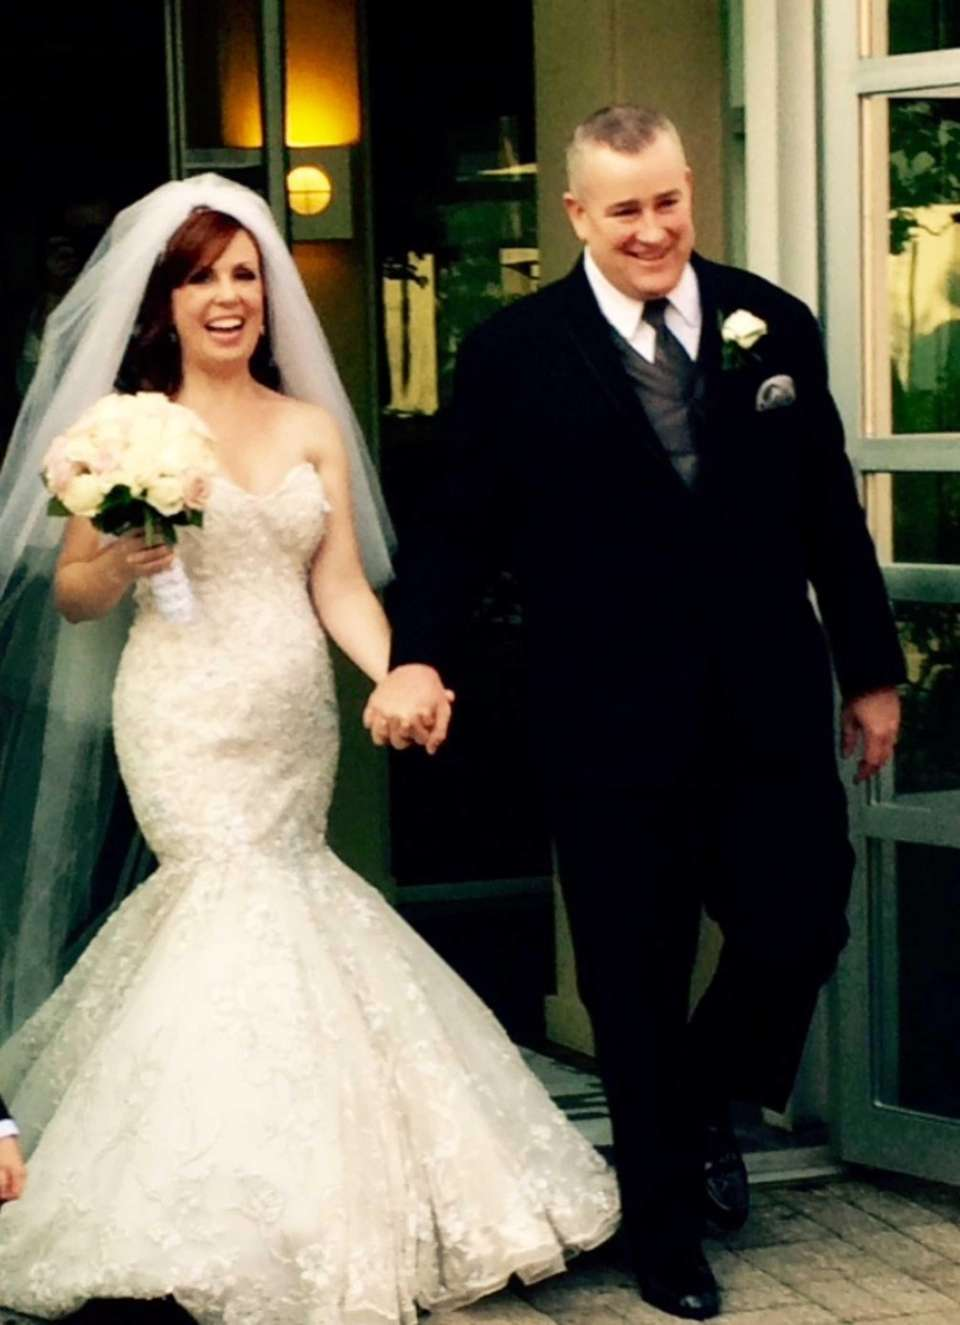 Todd Keyes and Jennifer Baribault were married on